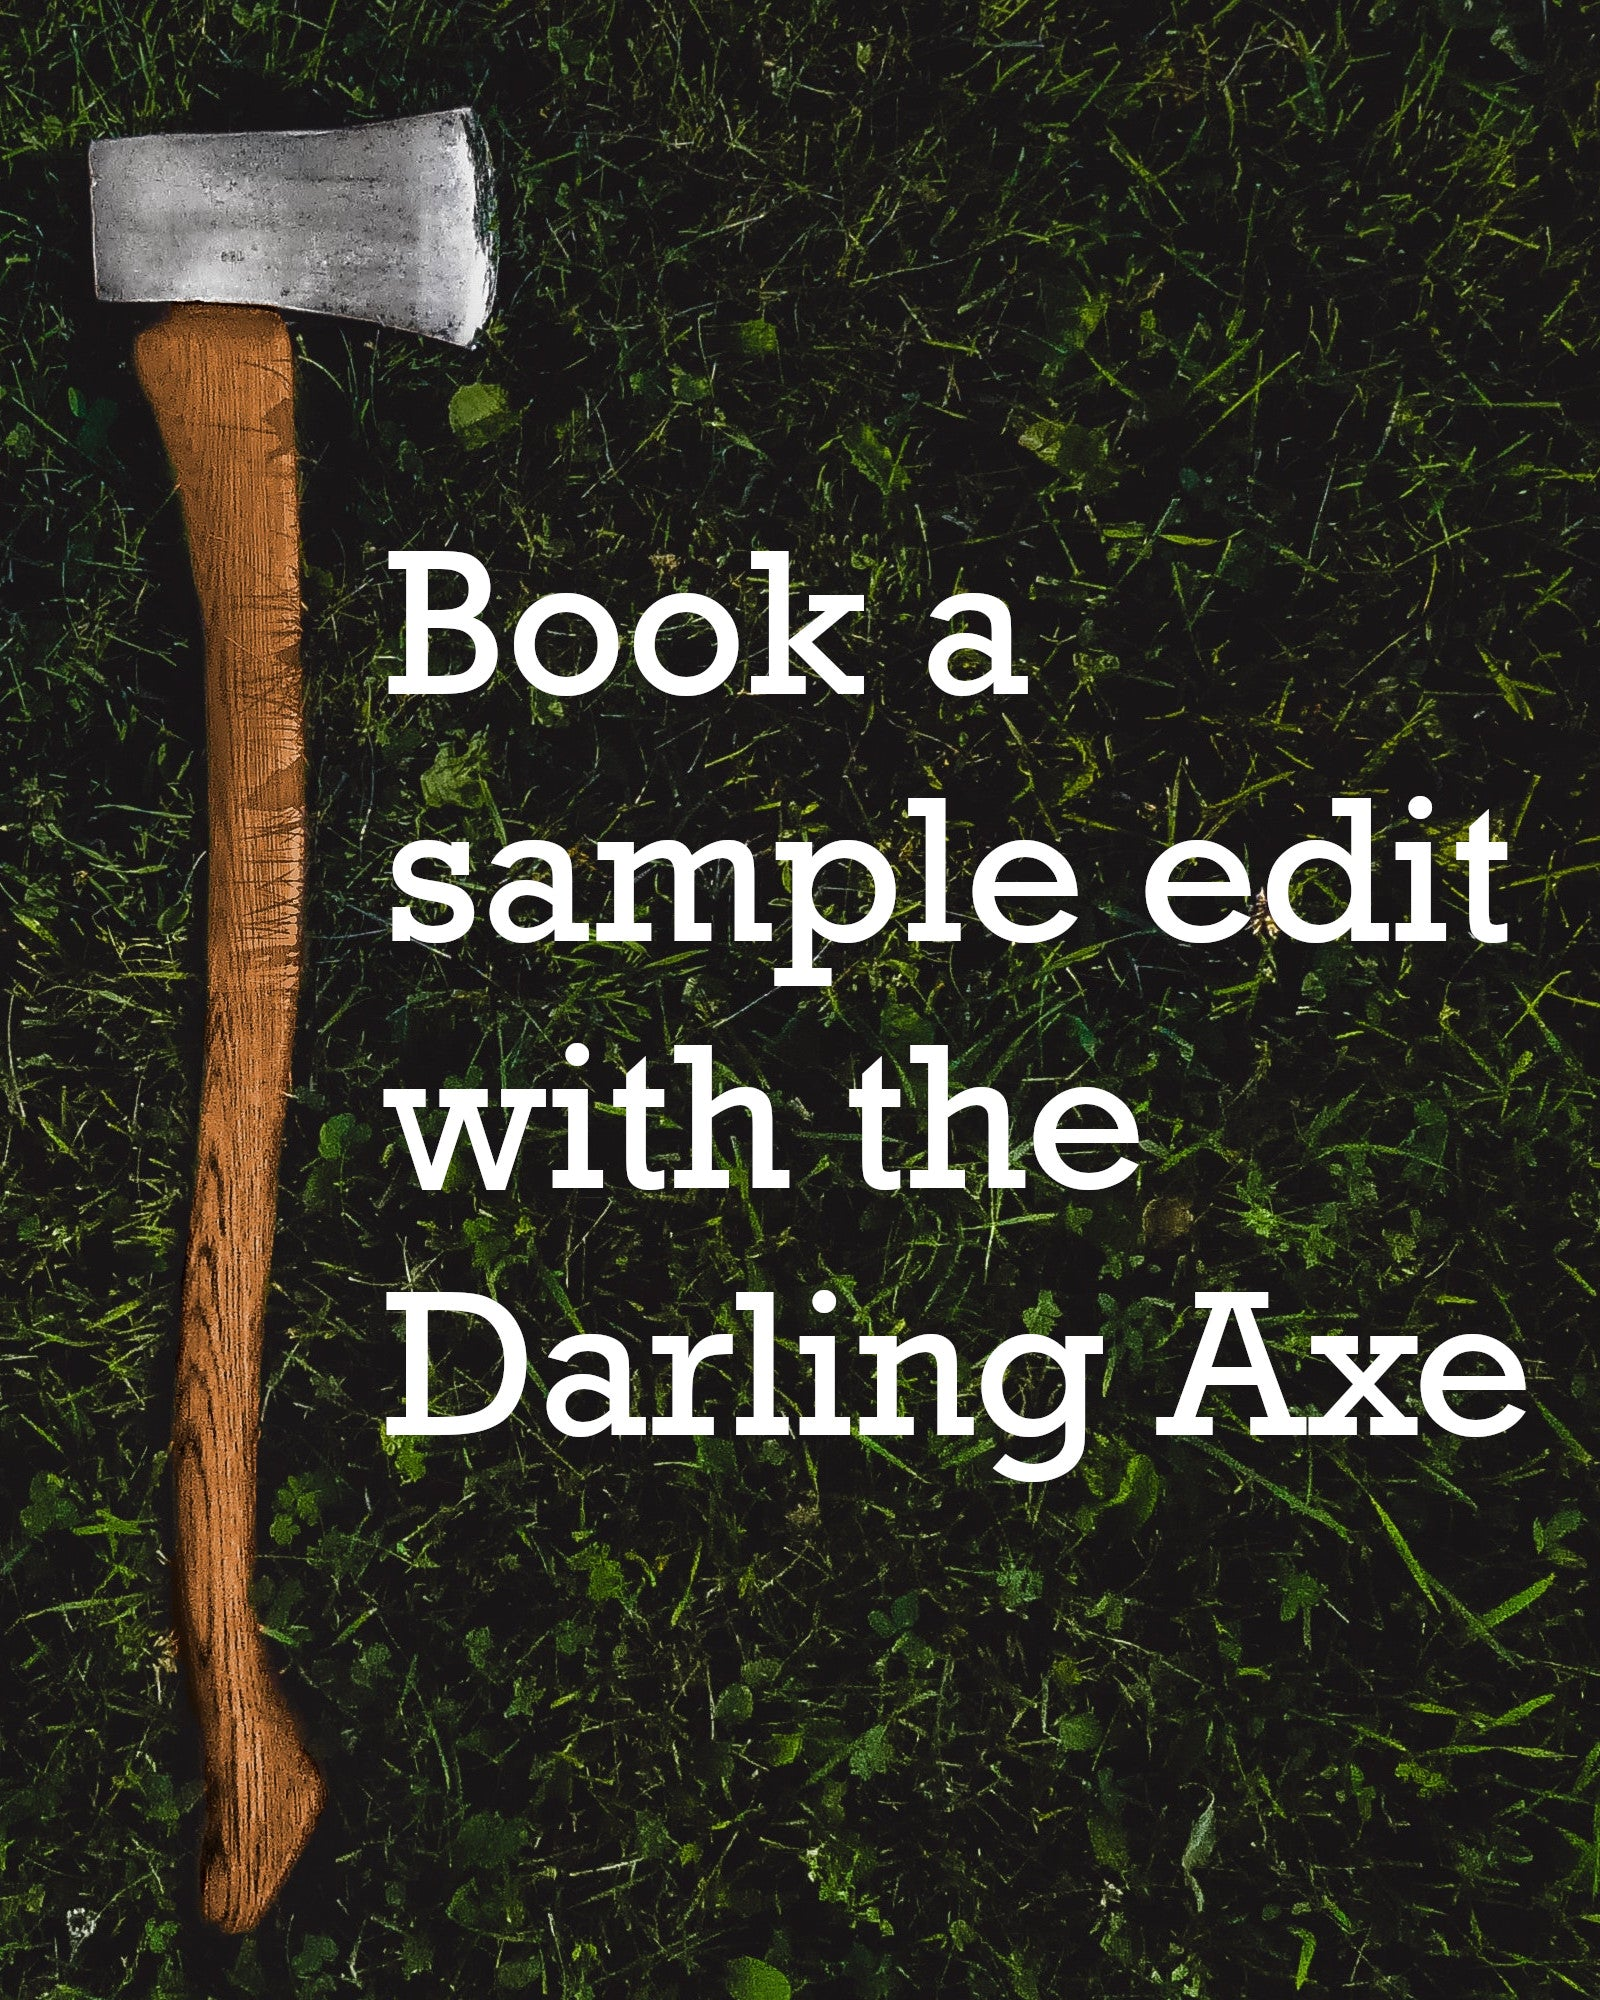 Book a sample edit with a professional fiction editor from the Darling Axe: manuscript development and book editing services